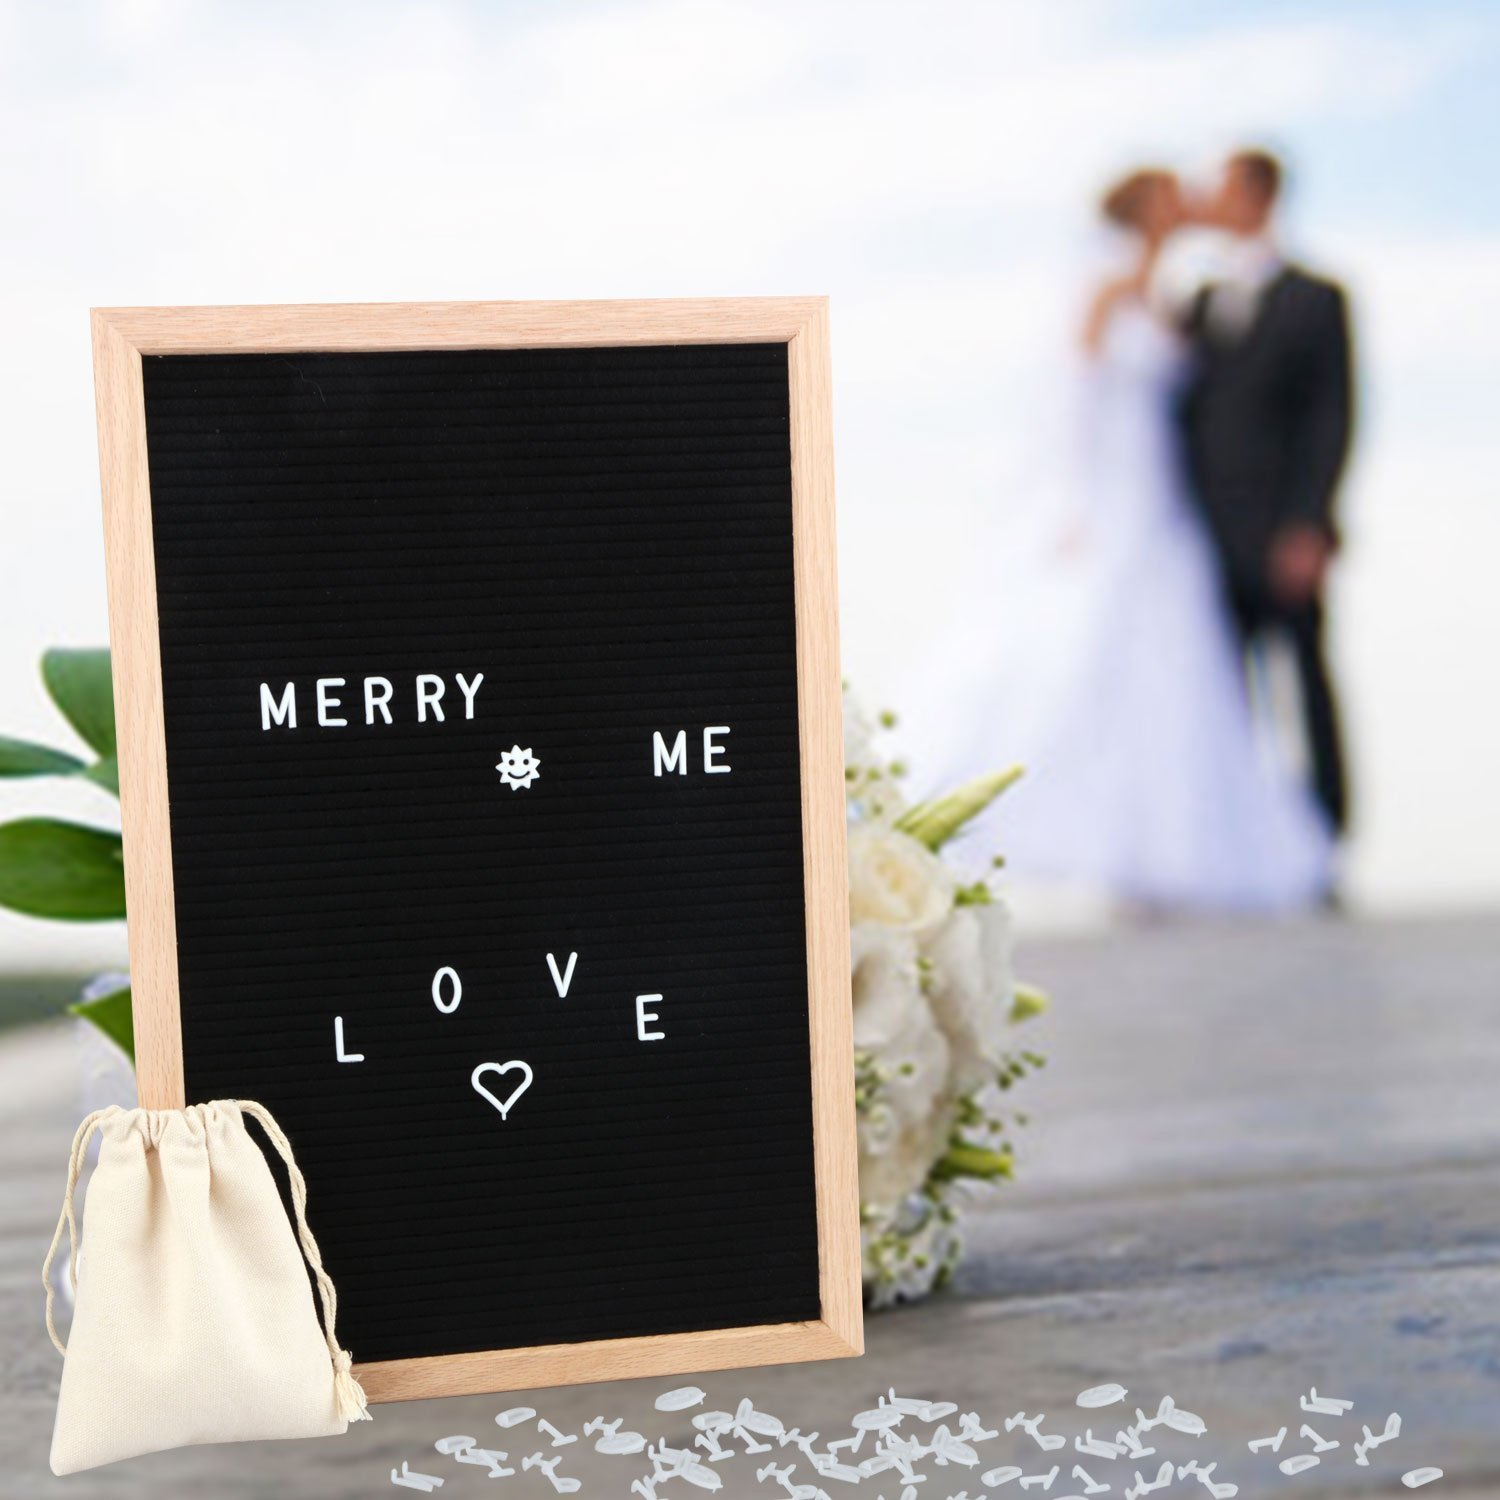 Black Felt Letter Board 12 x 18 Inches, Changeable Letter Boards with 340 White Plastic Letters, Oak Frame and FREE Canvas Bag Pannow